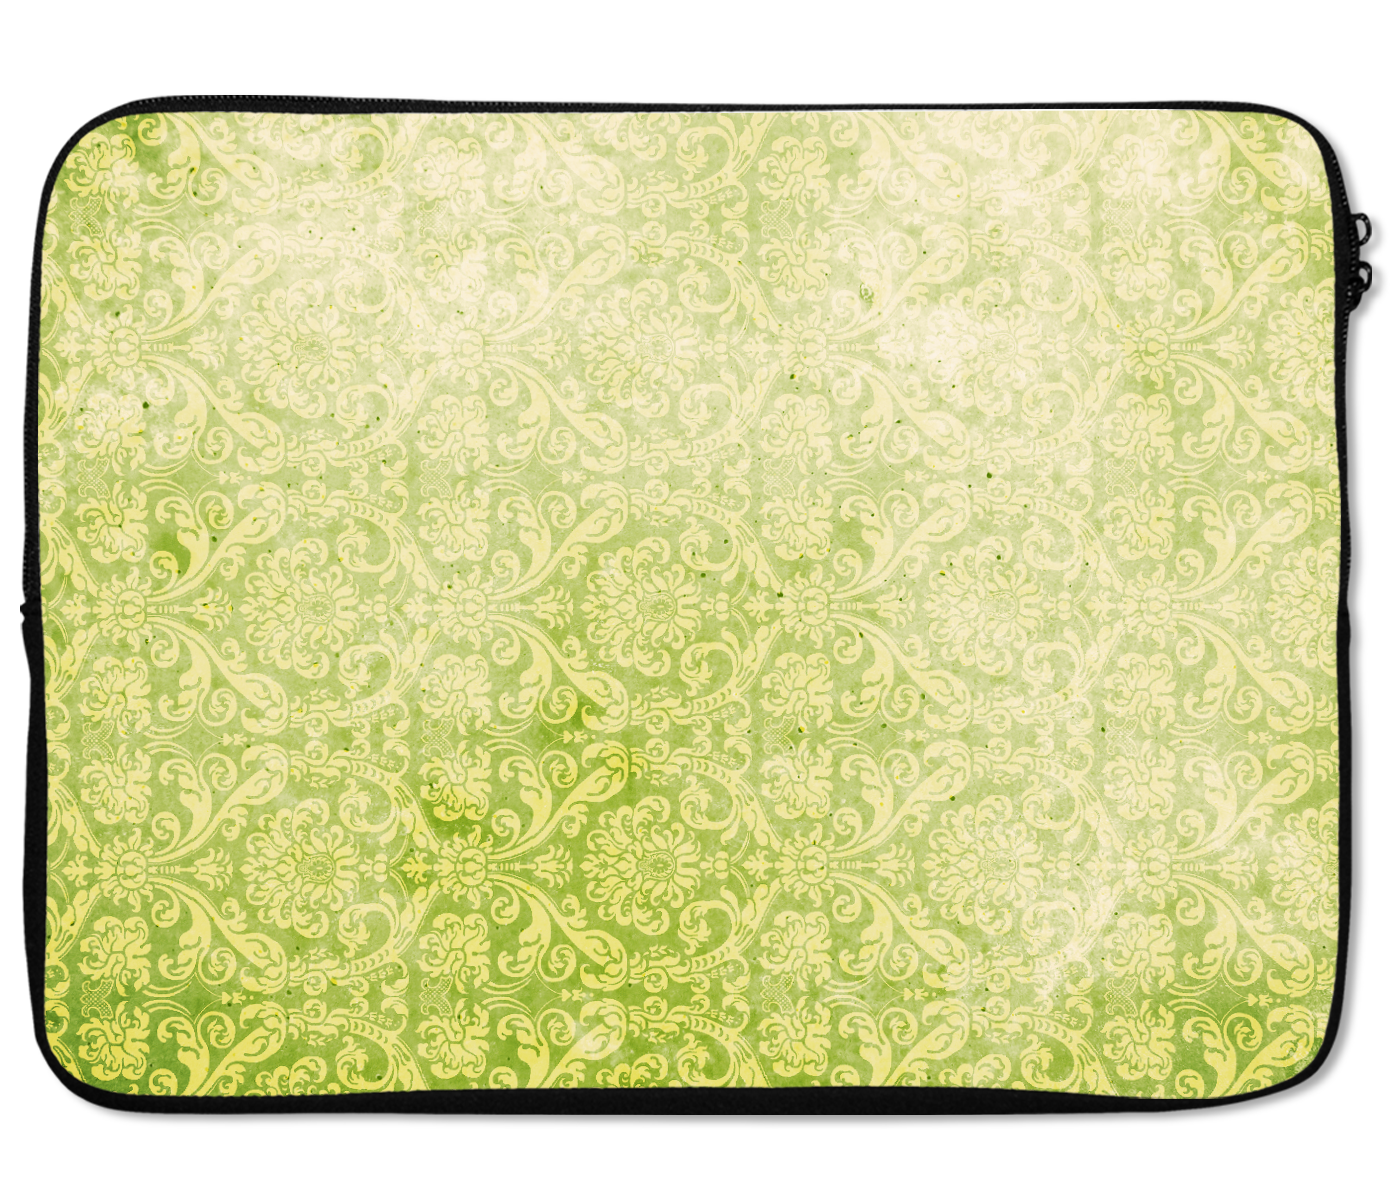 Laptops Tablet Sleeves Lime Green Vintage Damask Pattern Premium Quality Neoprene Laptop Protection